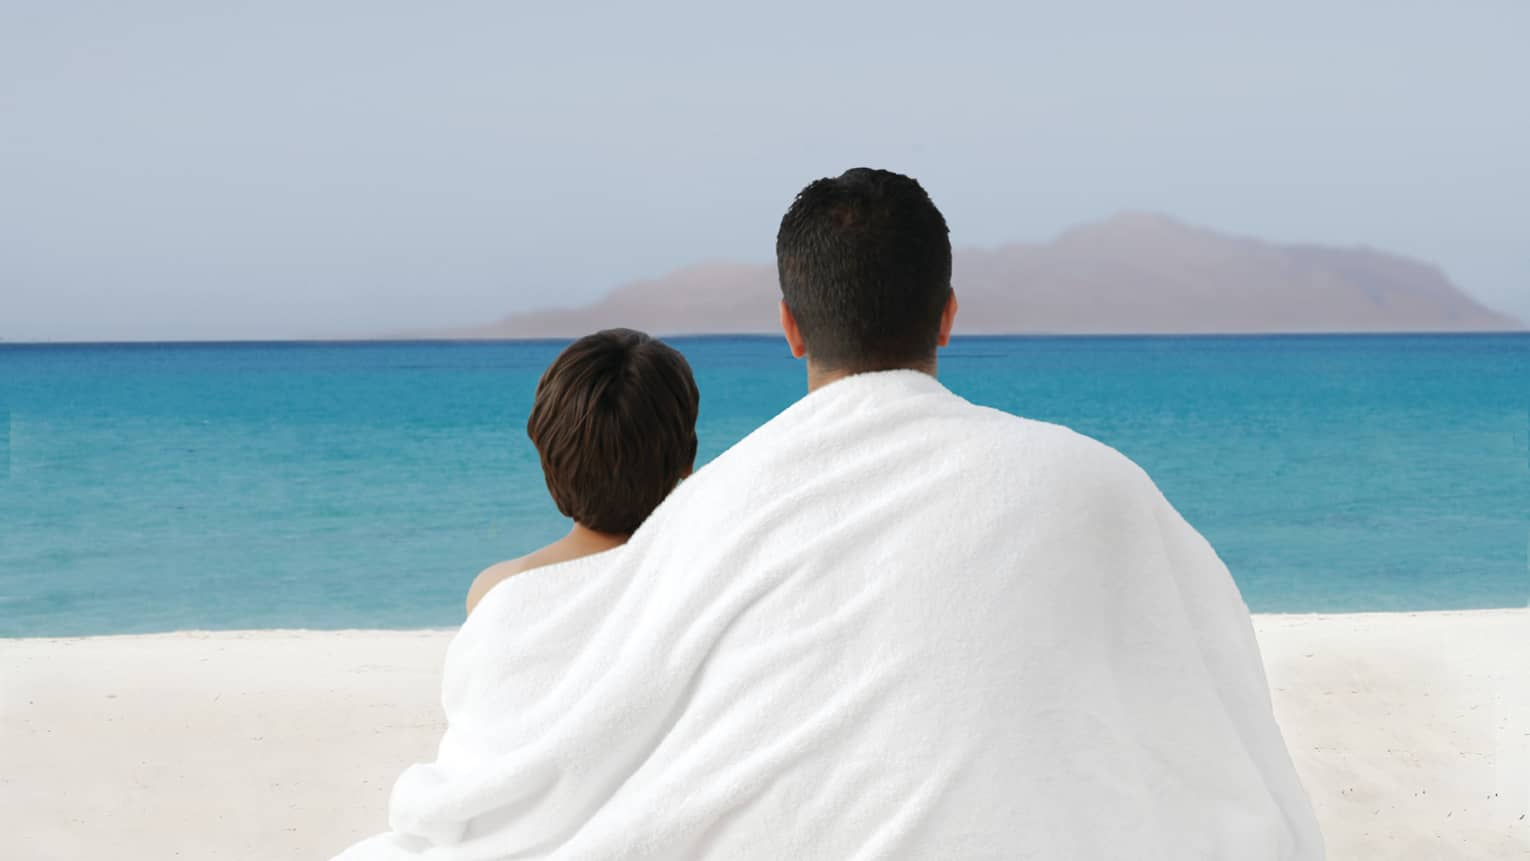 Father and son share white towel drapes across backs, look out at beach and sea